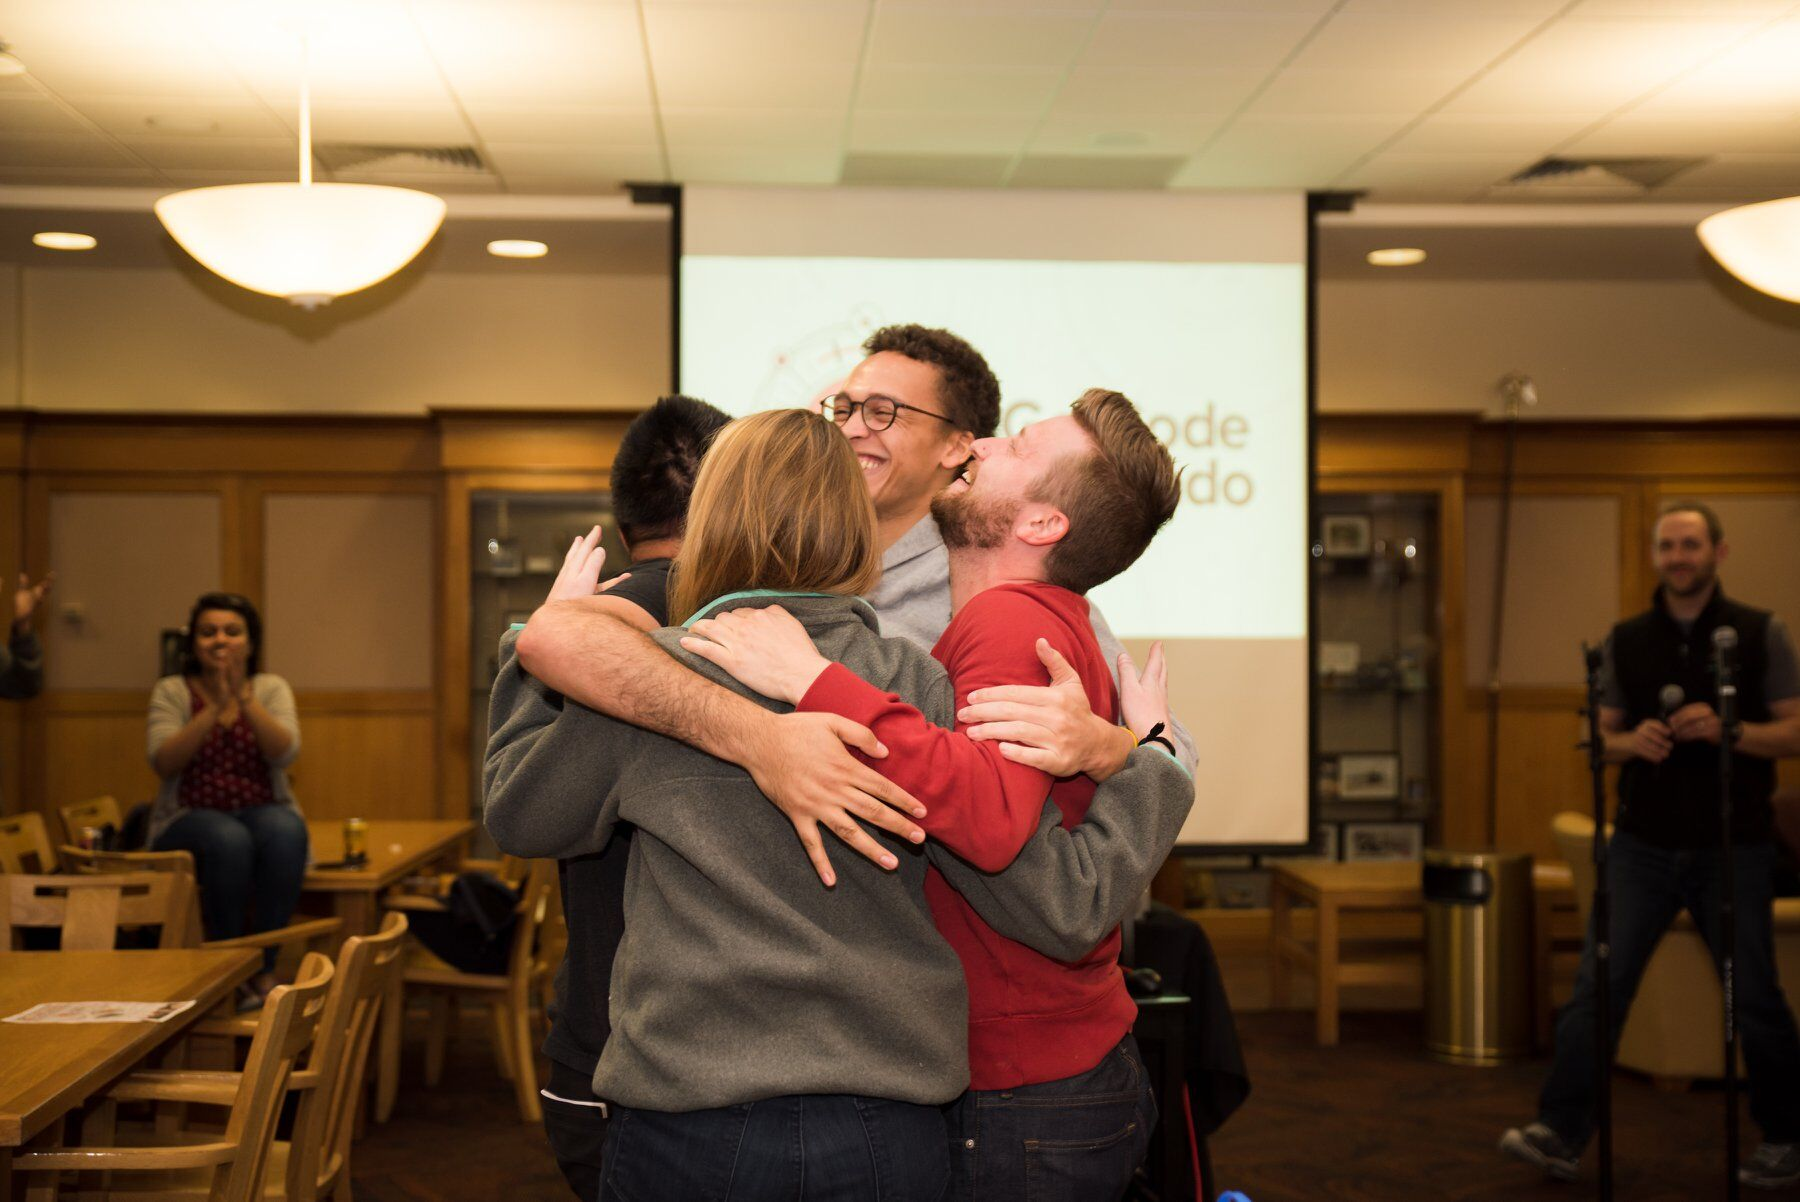 Choozle team members hugging it out at go code colorado